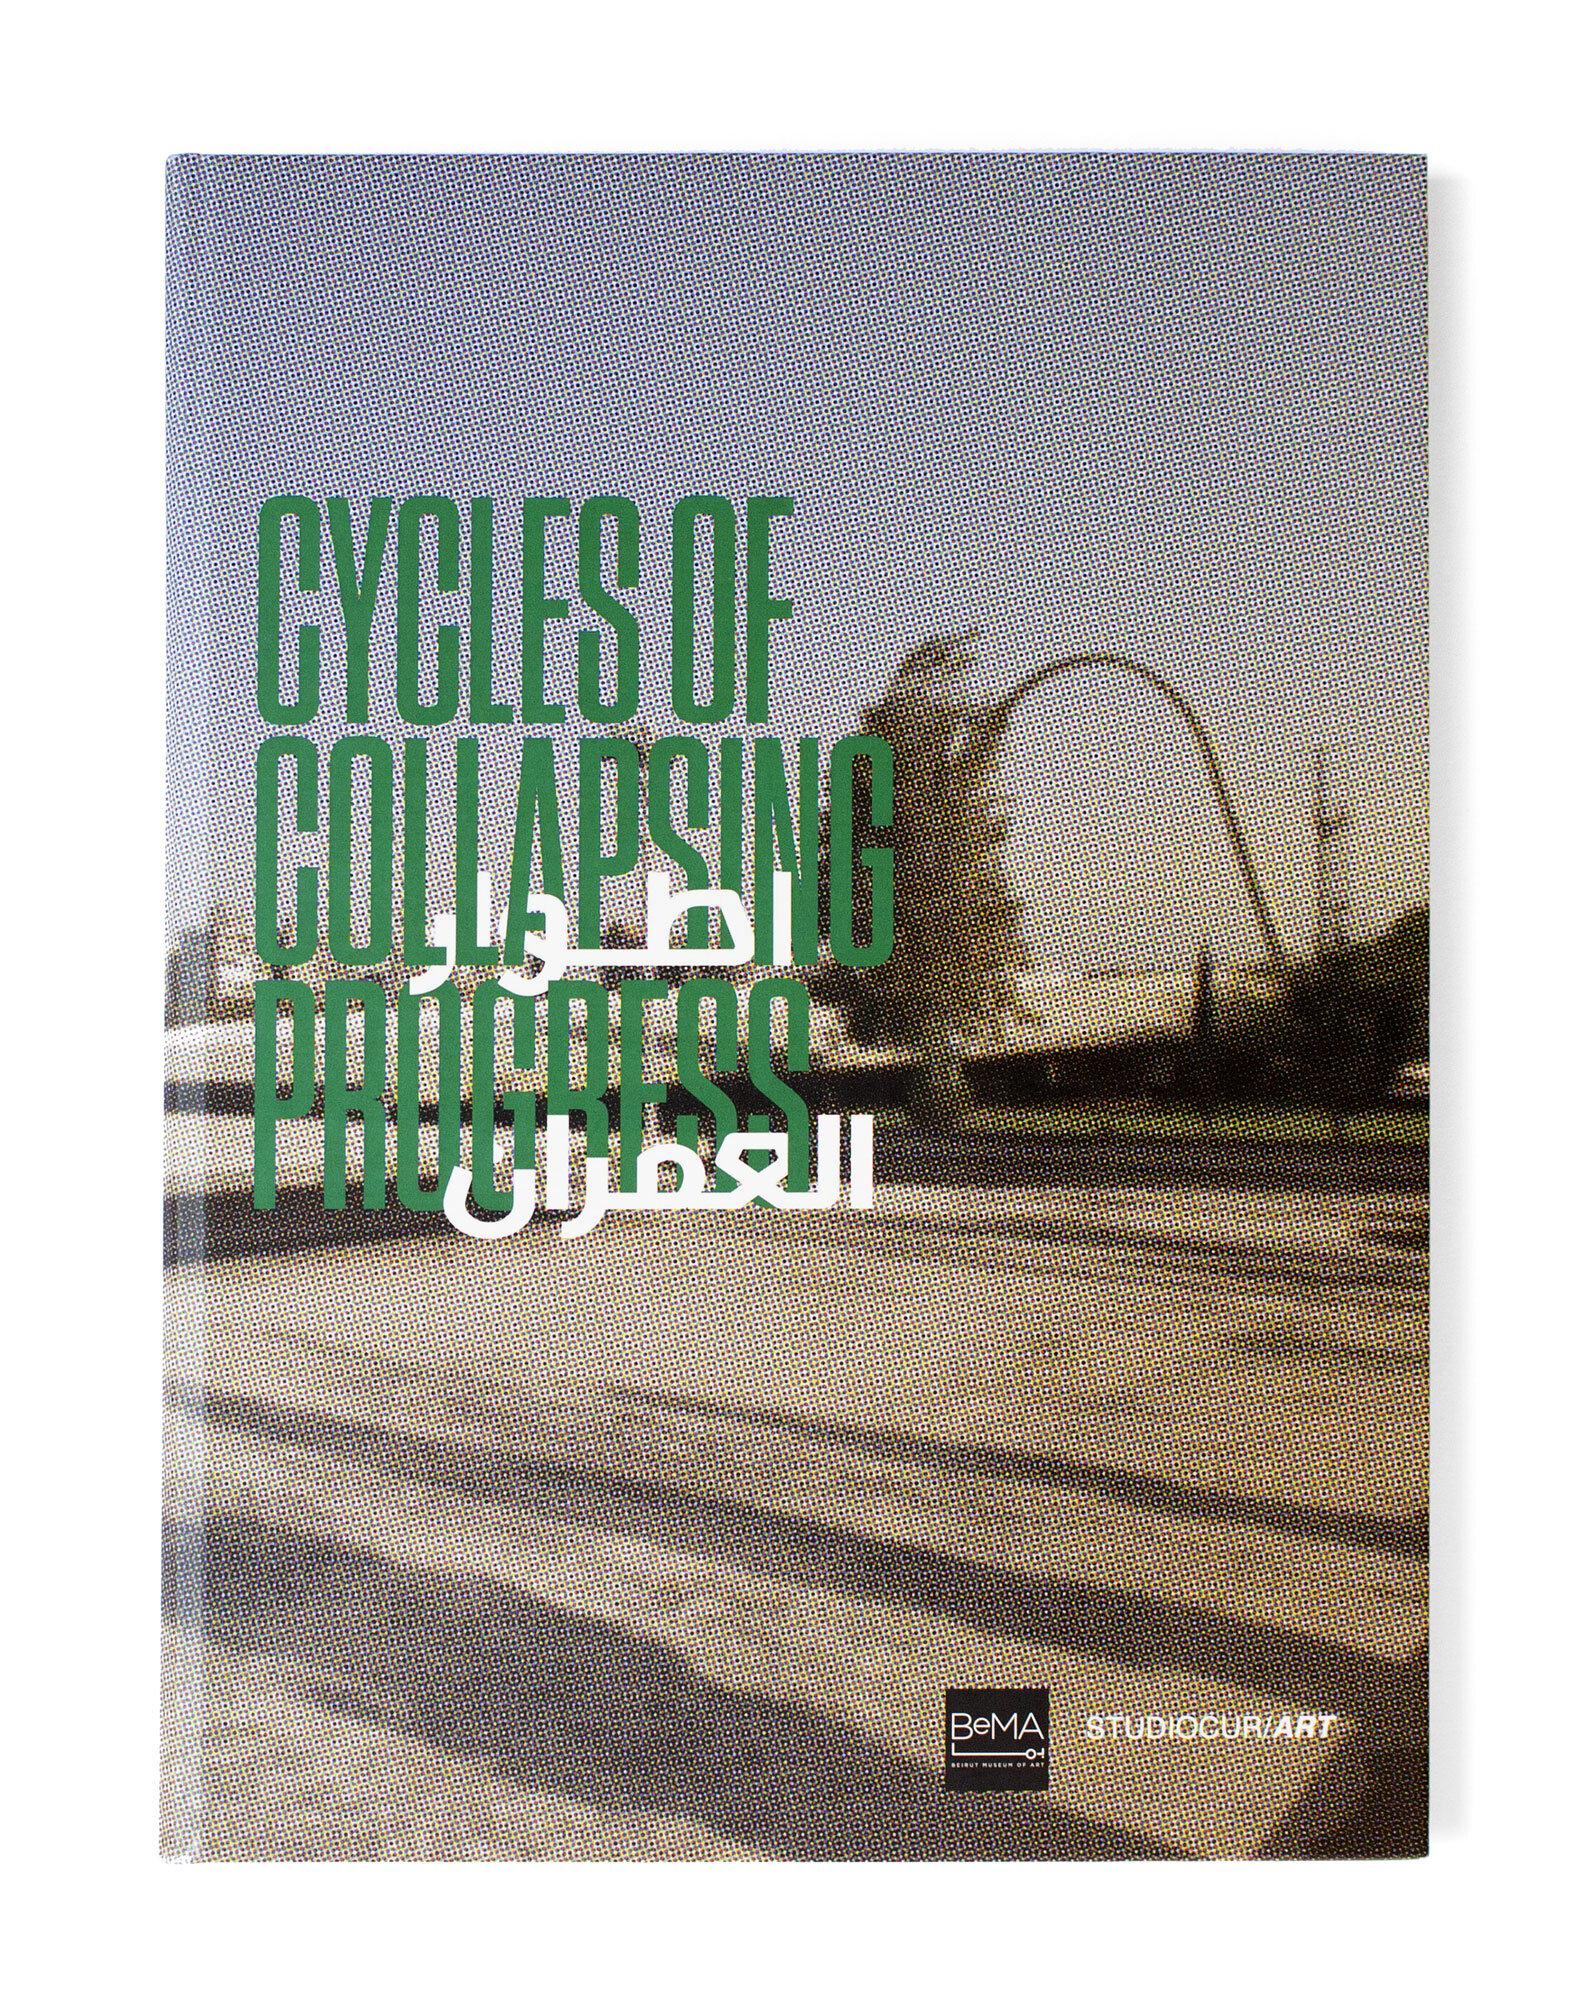 Cycles of Collapsing Progress | Publication